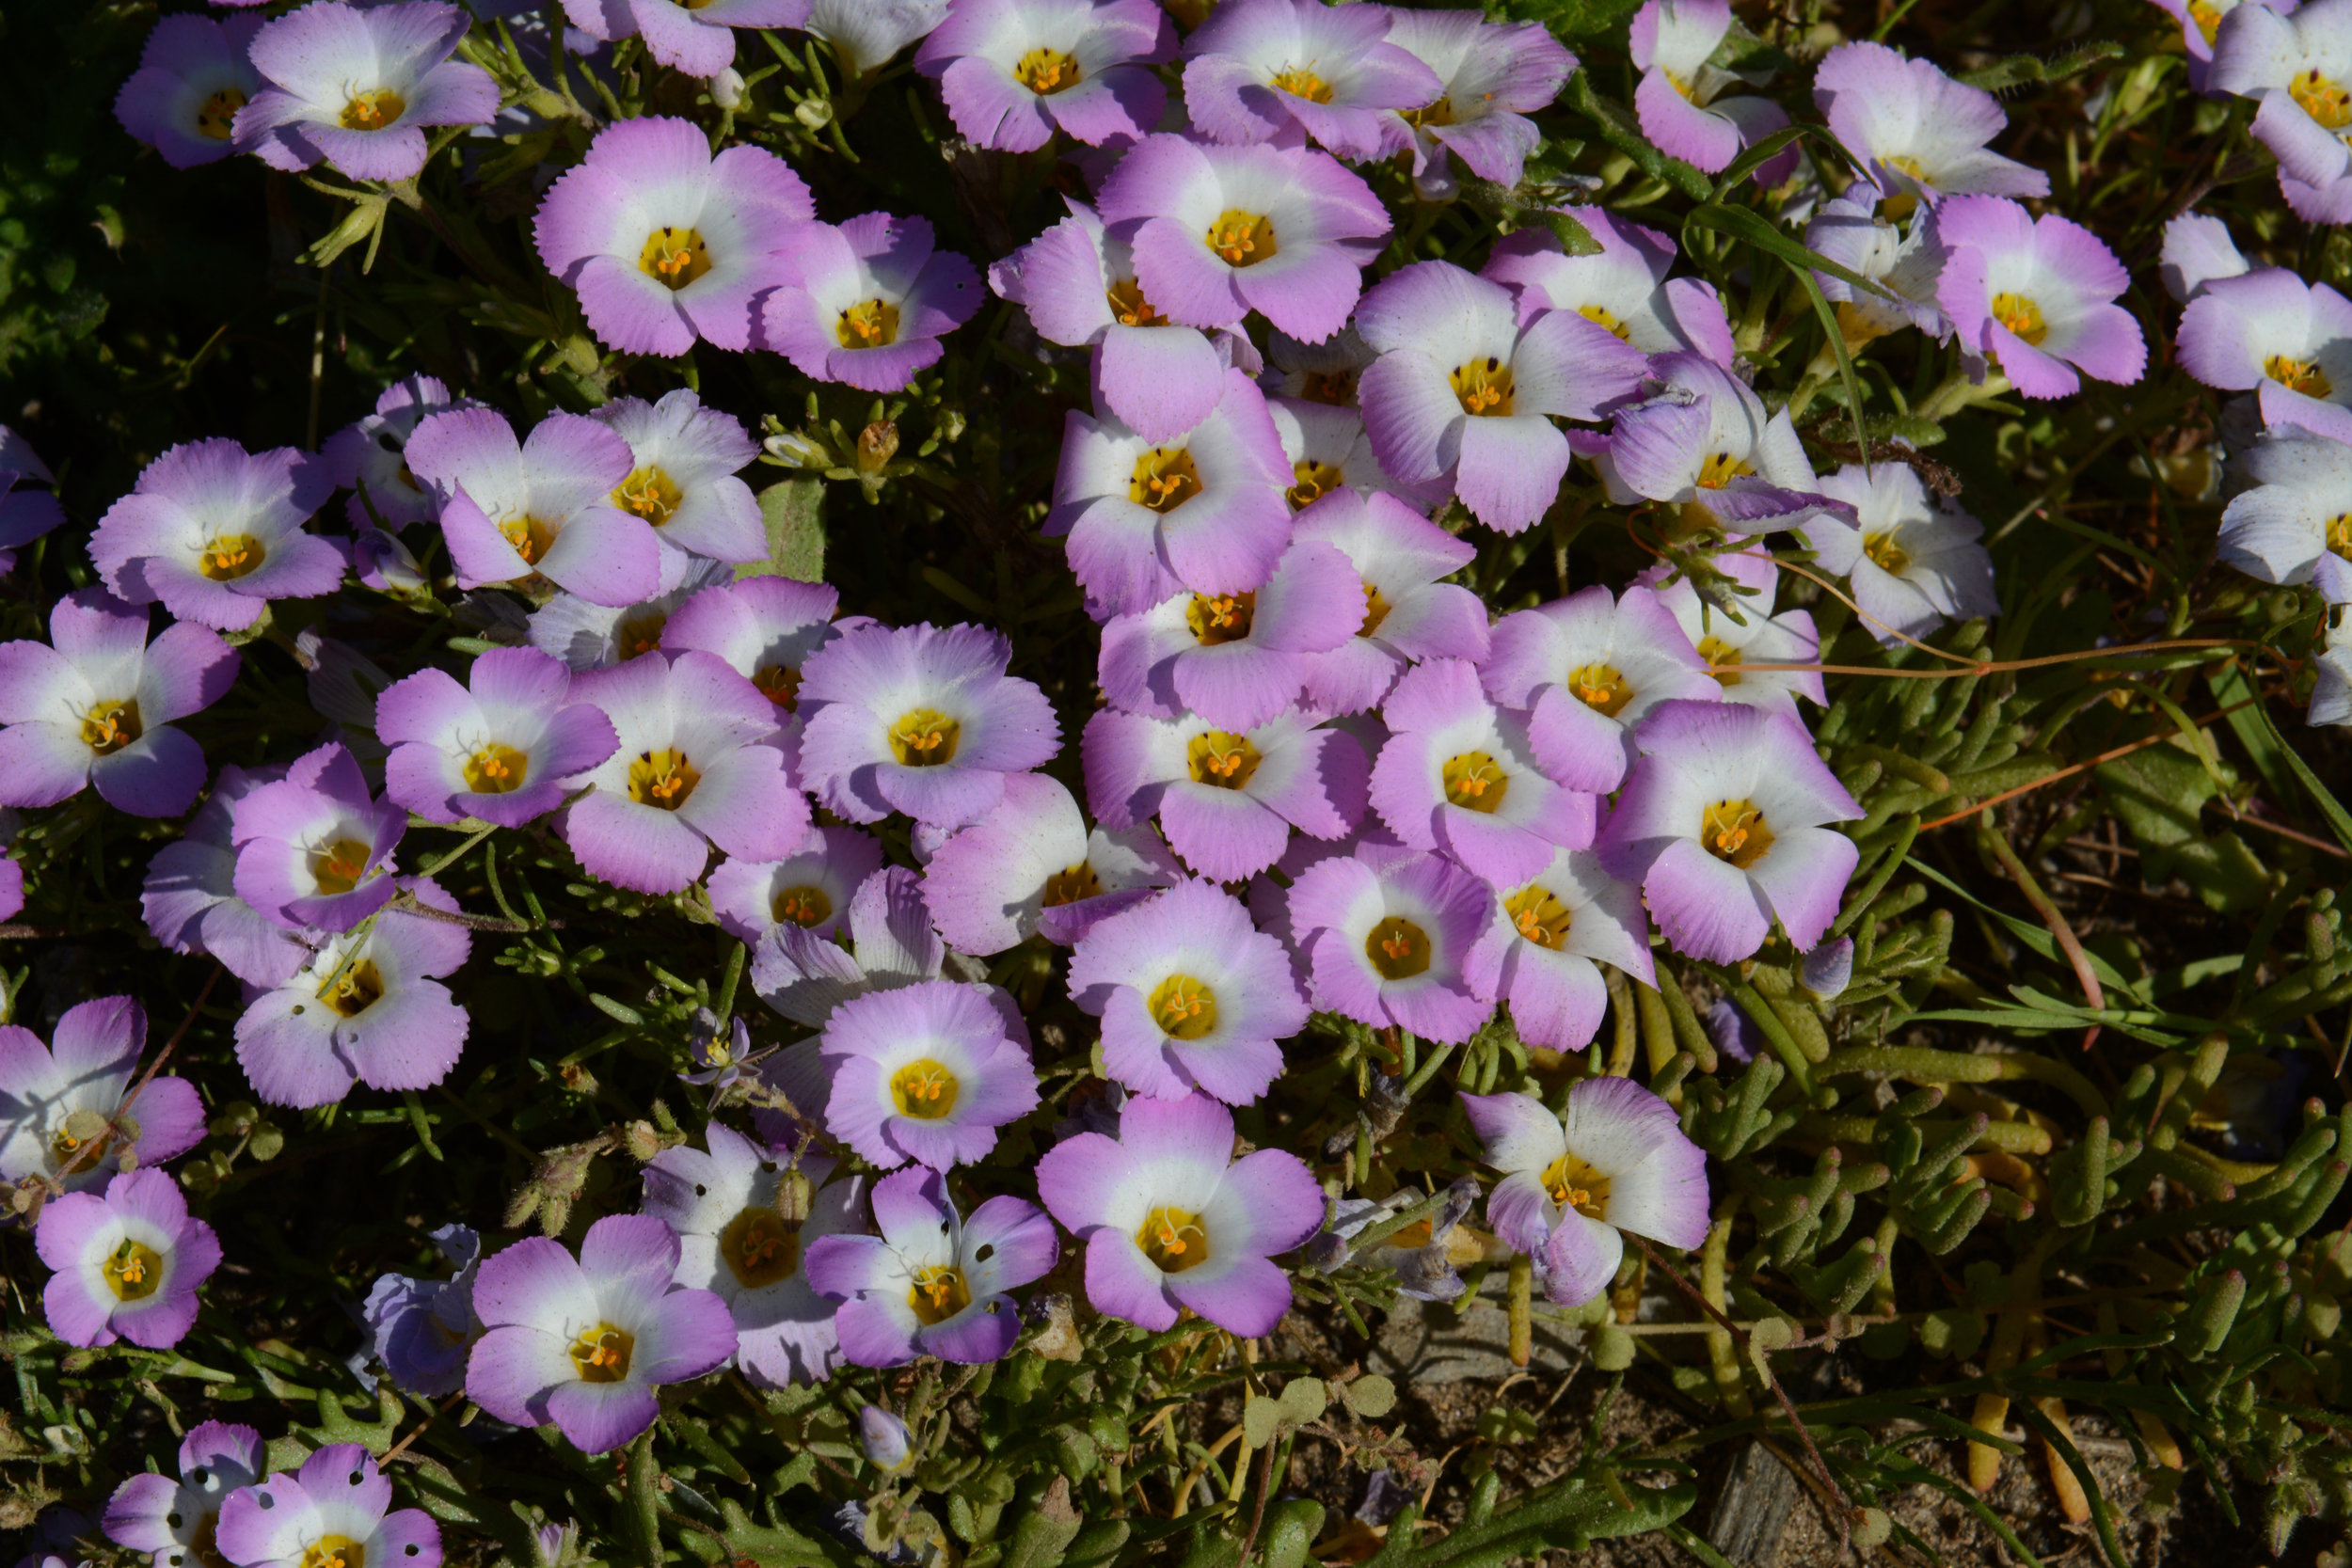 Linanthus dianthiflorus photo by Tom Oberbauer